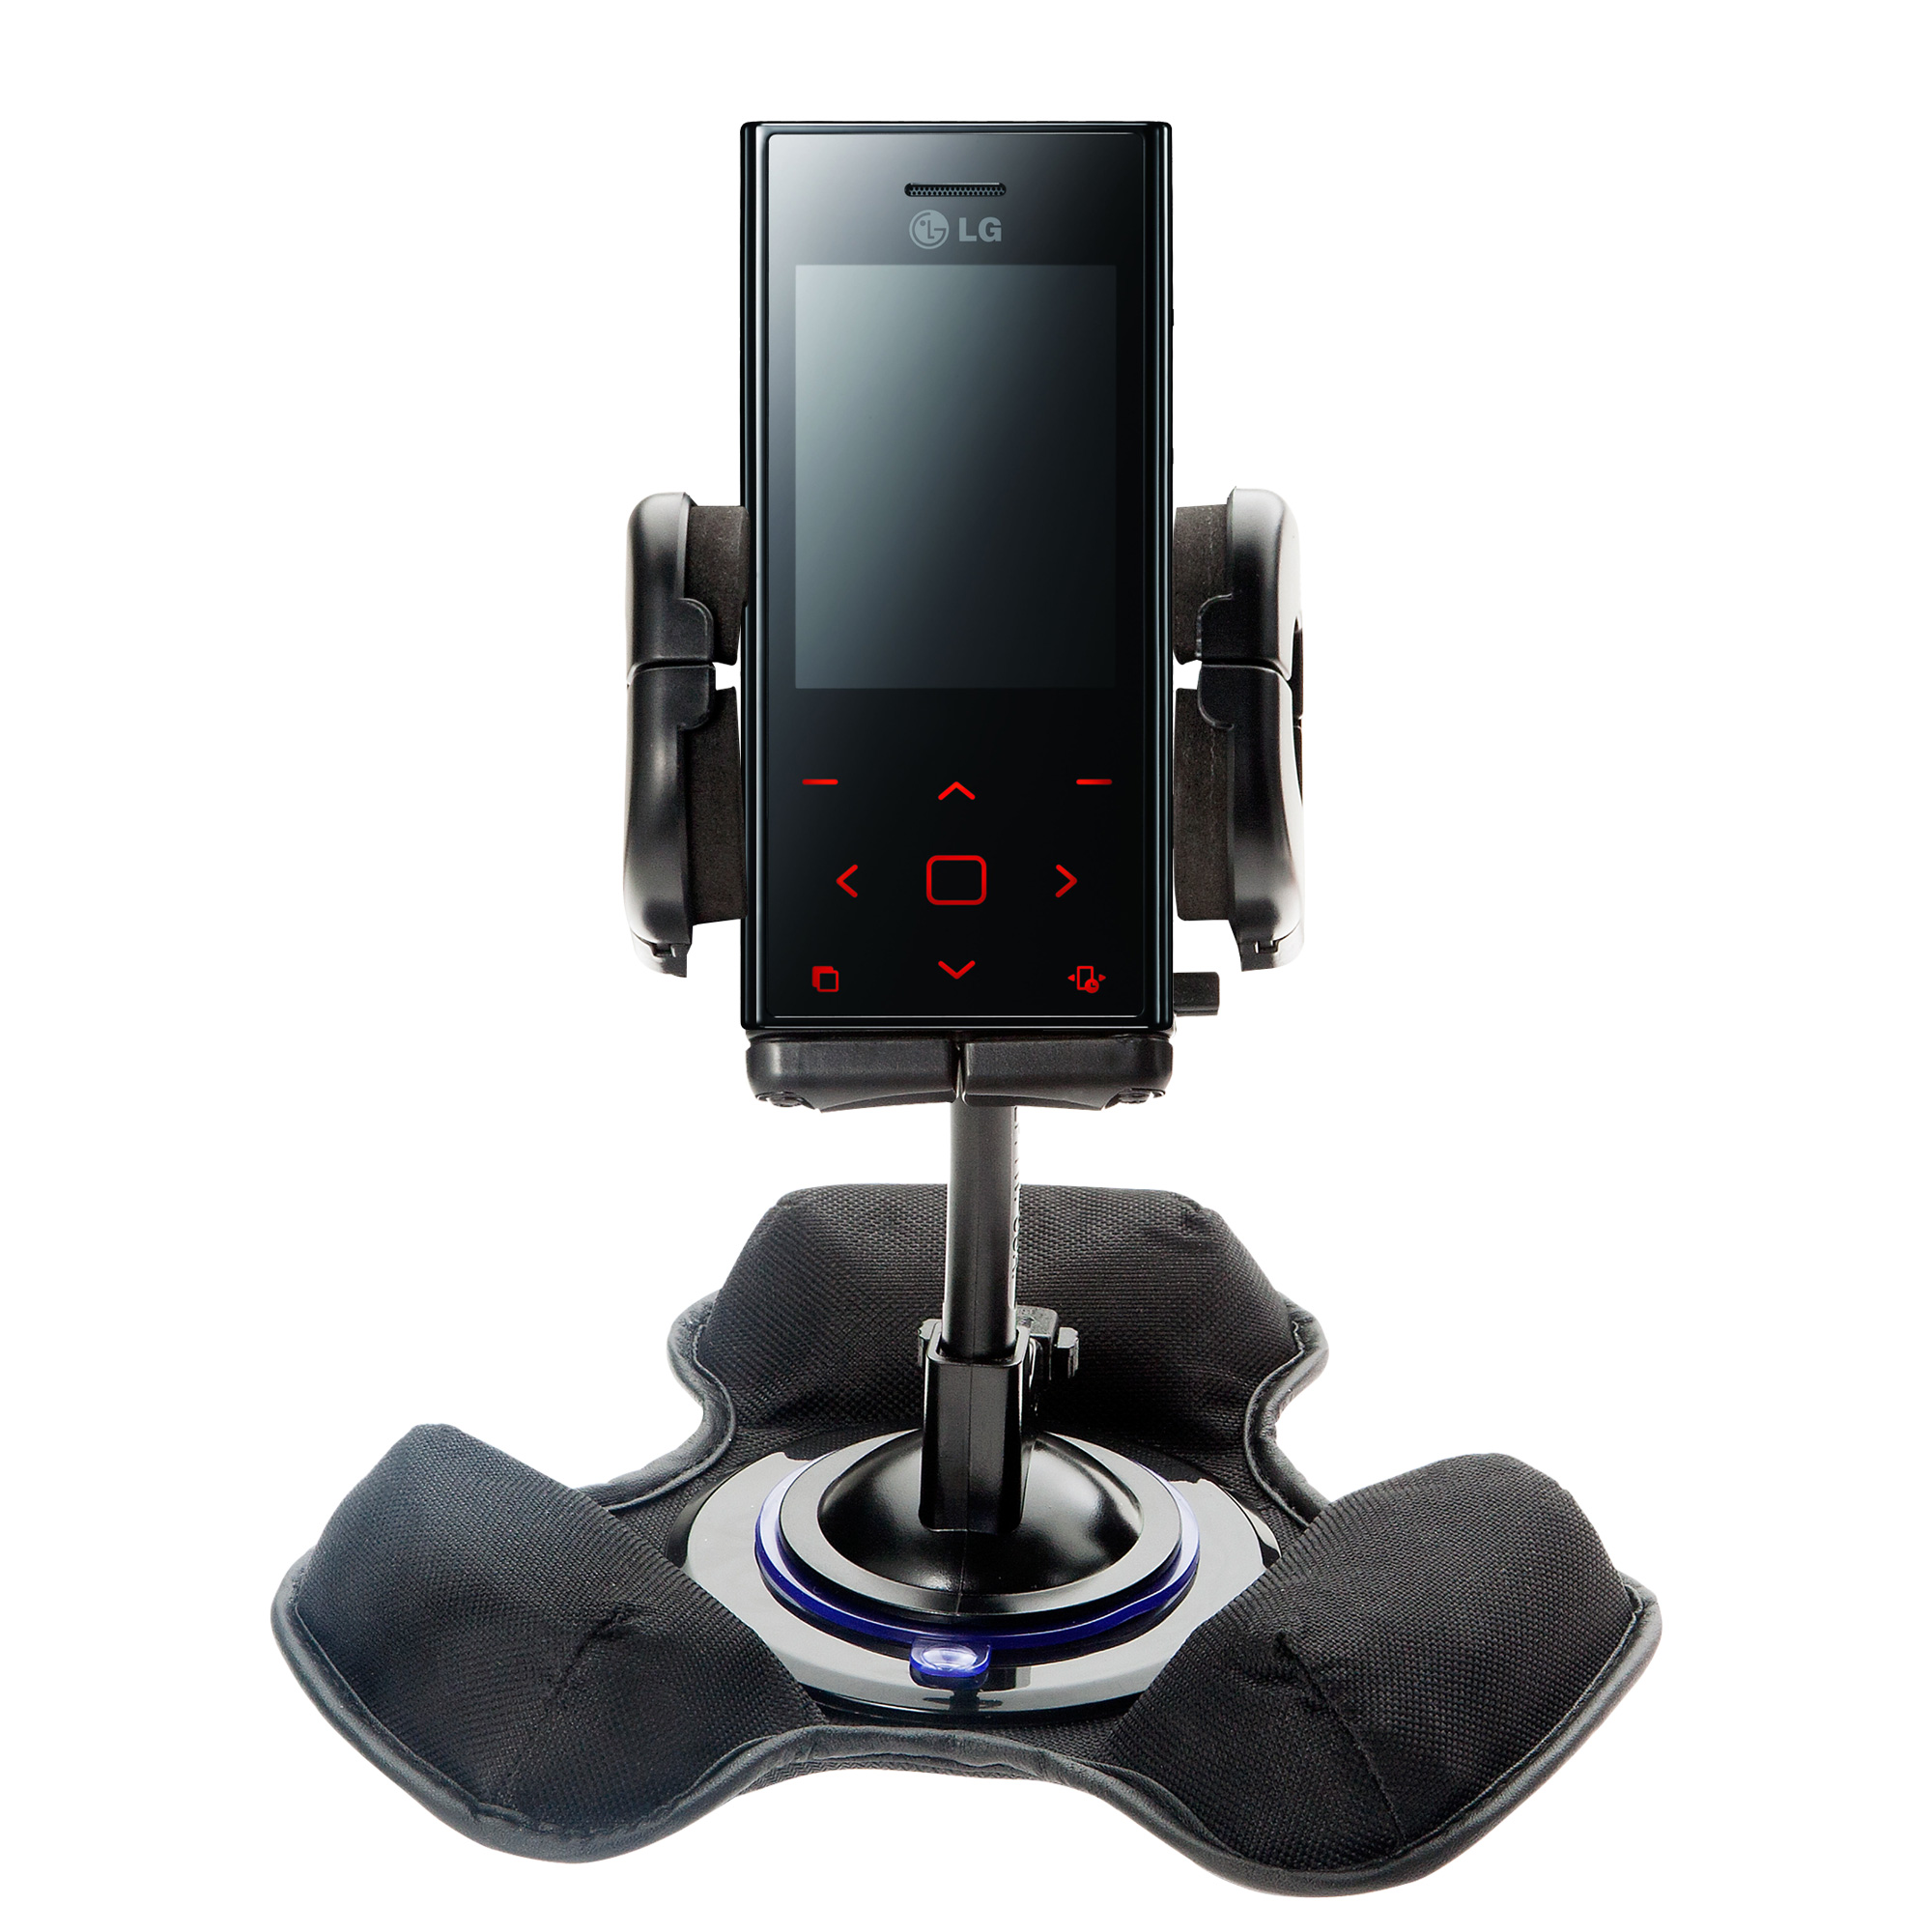 Dash and Windshield Holder compatible with the LG New Chocolate BL20